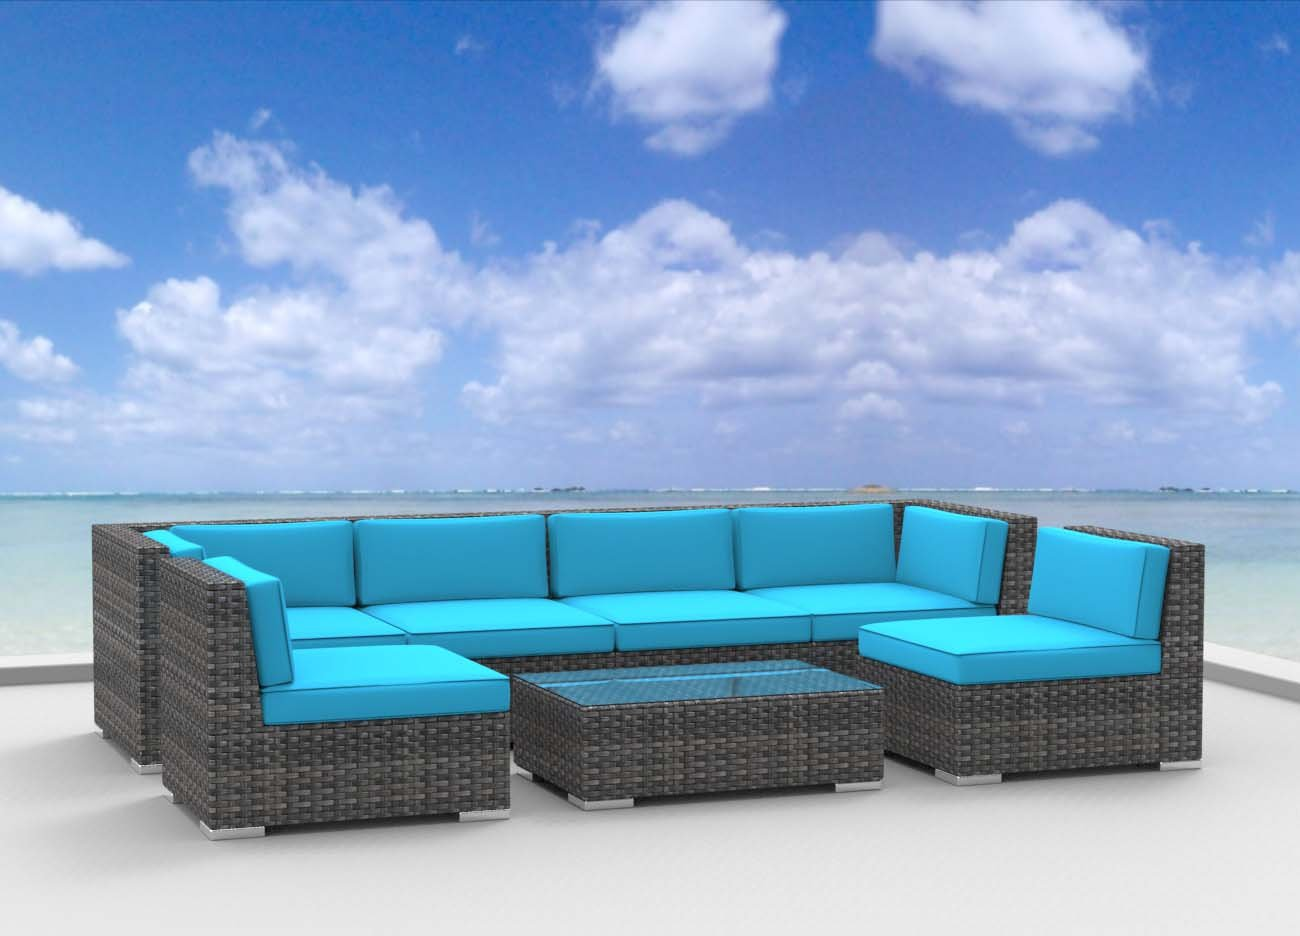 www.urbanfurnishing.net Urban Furnishing - OAHU 7pc Modern Outdoor Backyard Wicker Rattan Patio Furniture Sofa Sectional Couch Set - Sea Blue at Sears.com